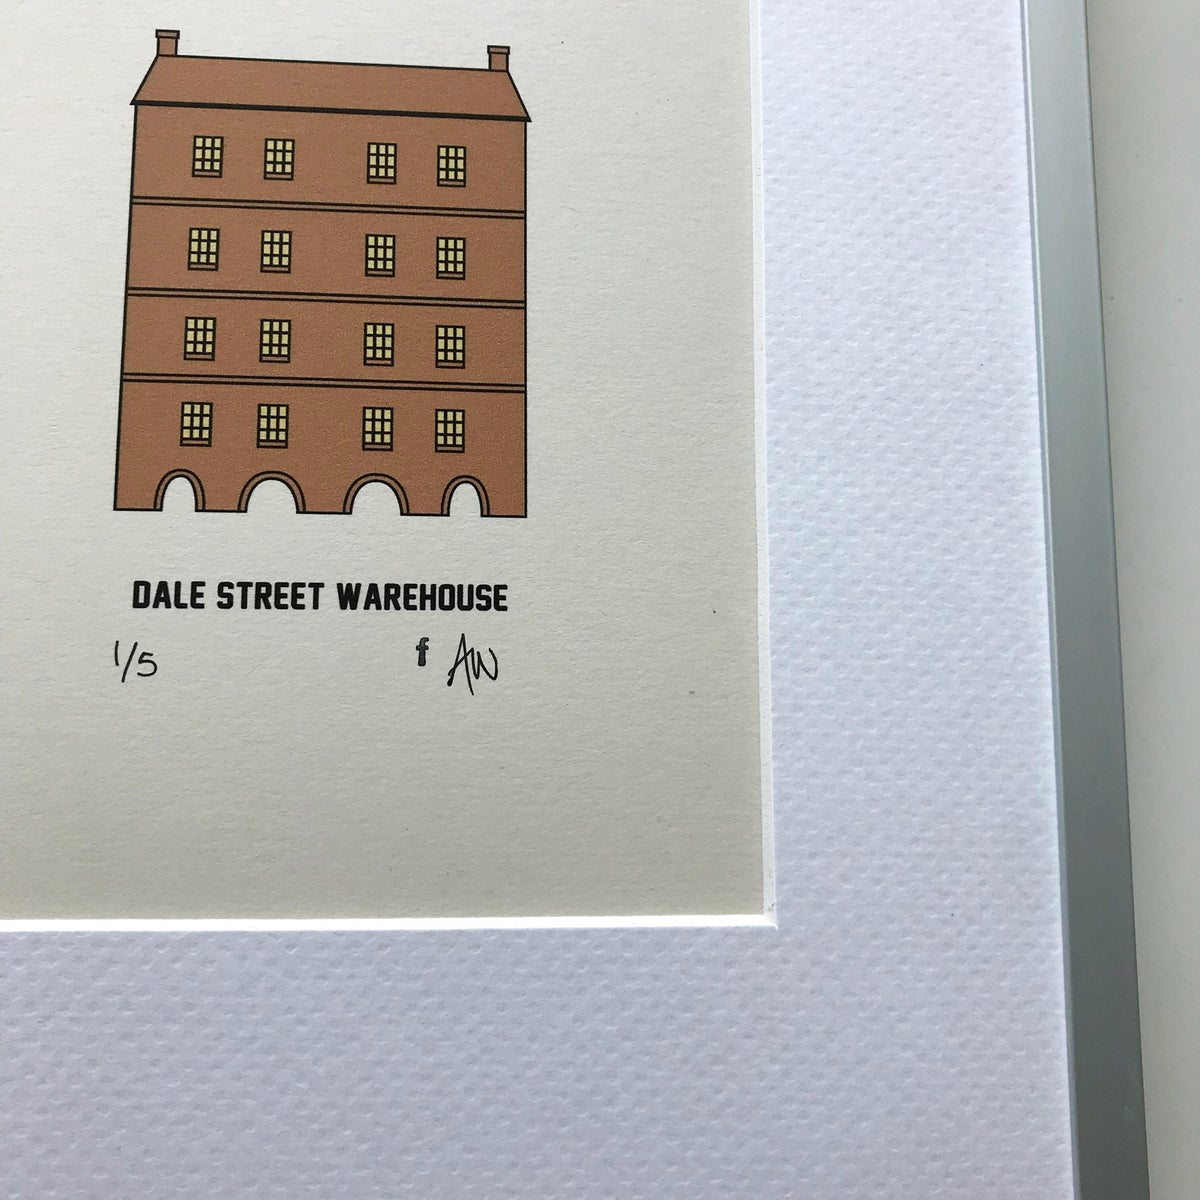 Image of DALE STREET WAREHOUSE MANCHESTER FRAMED PRINT by fingsMCR